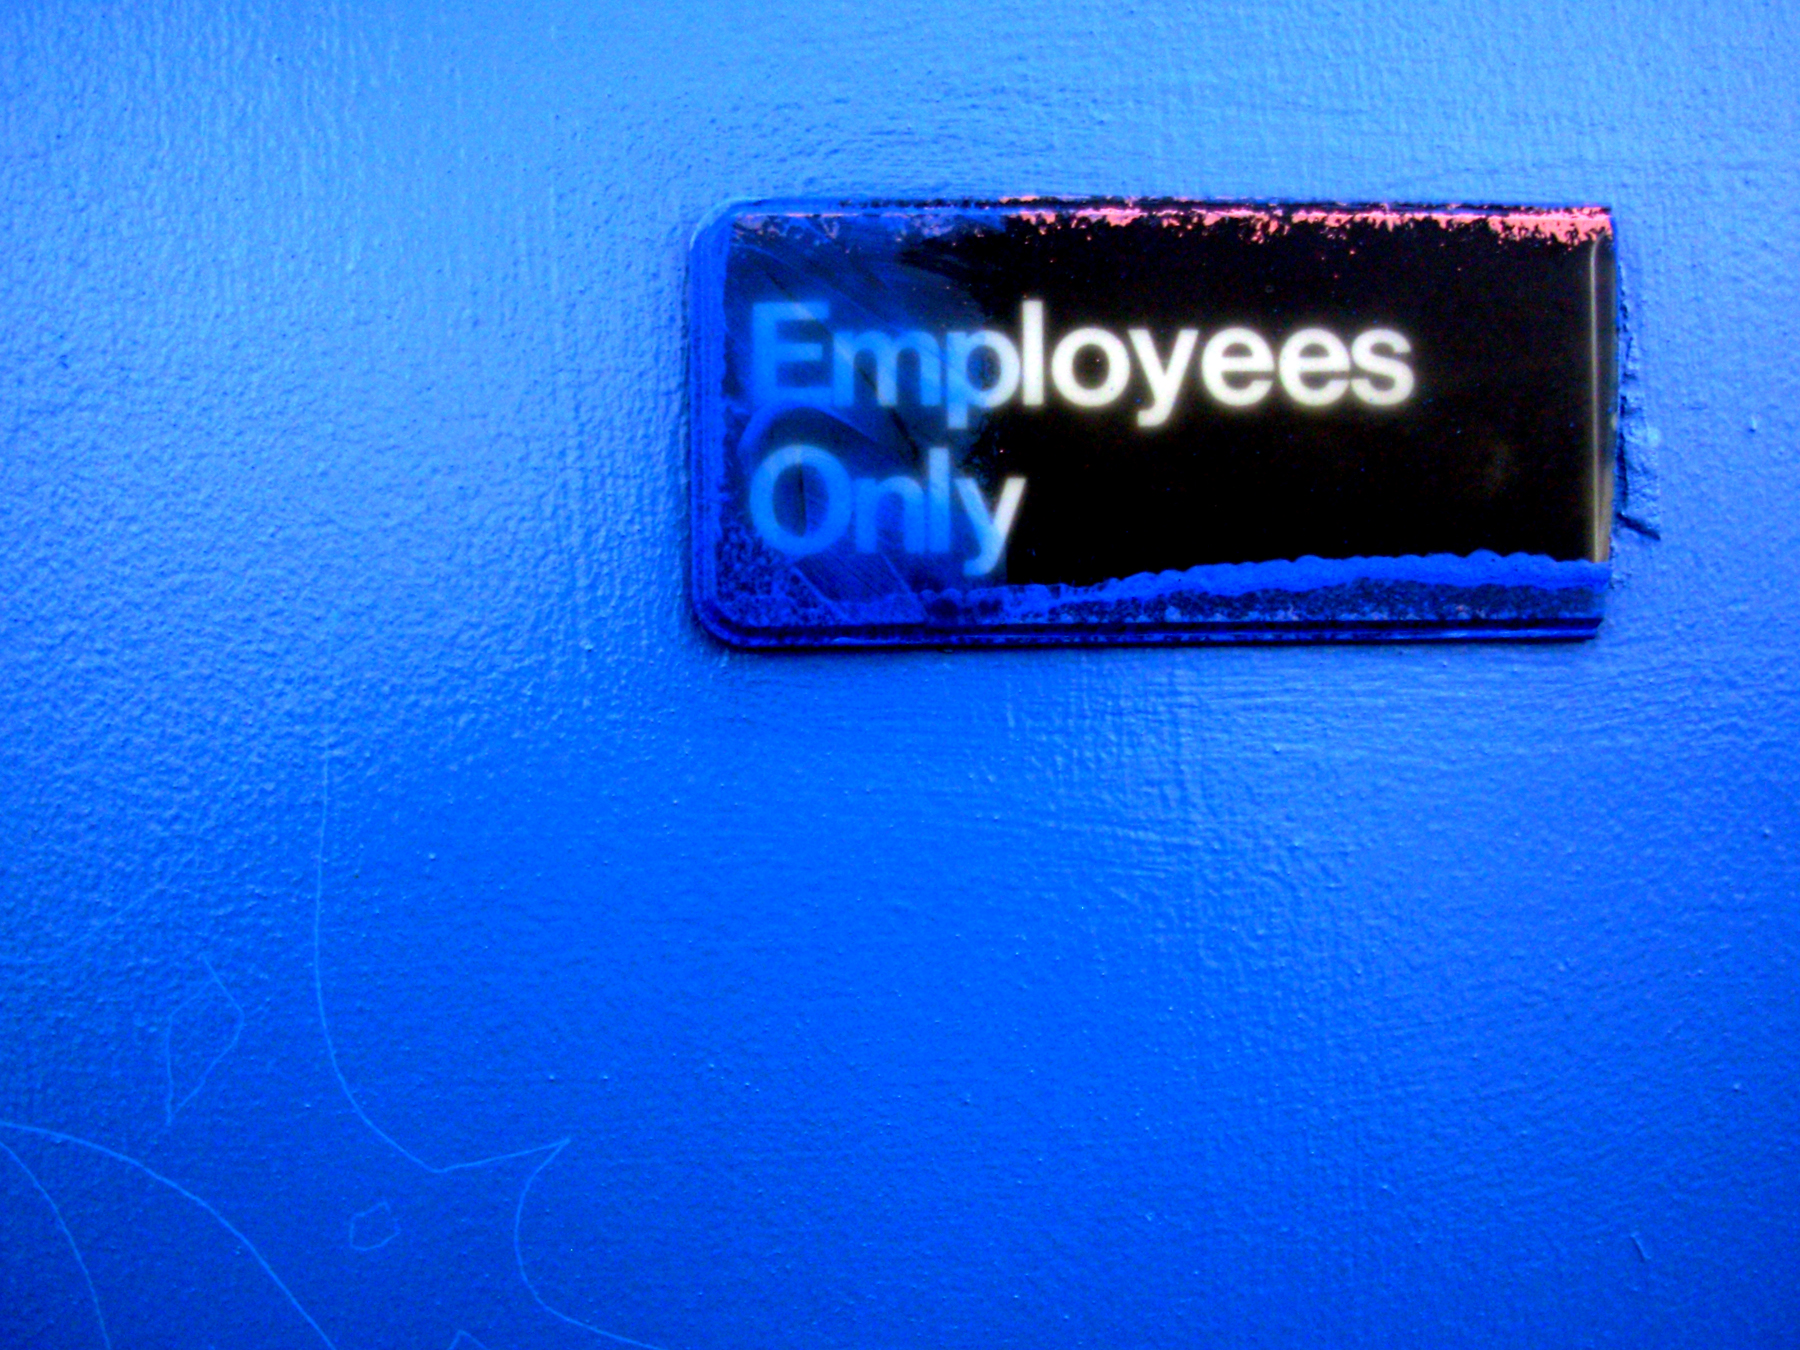 employeesonlydoor.jpg